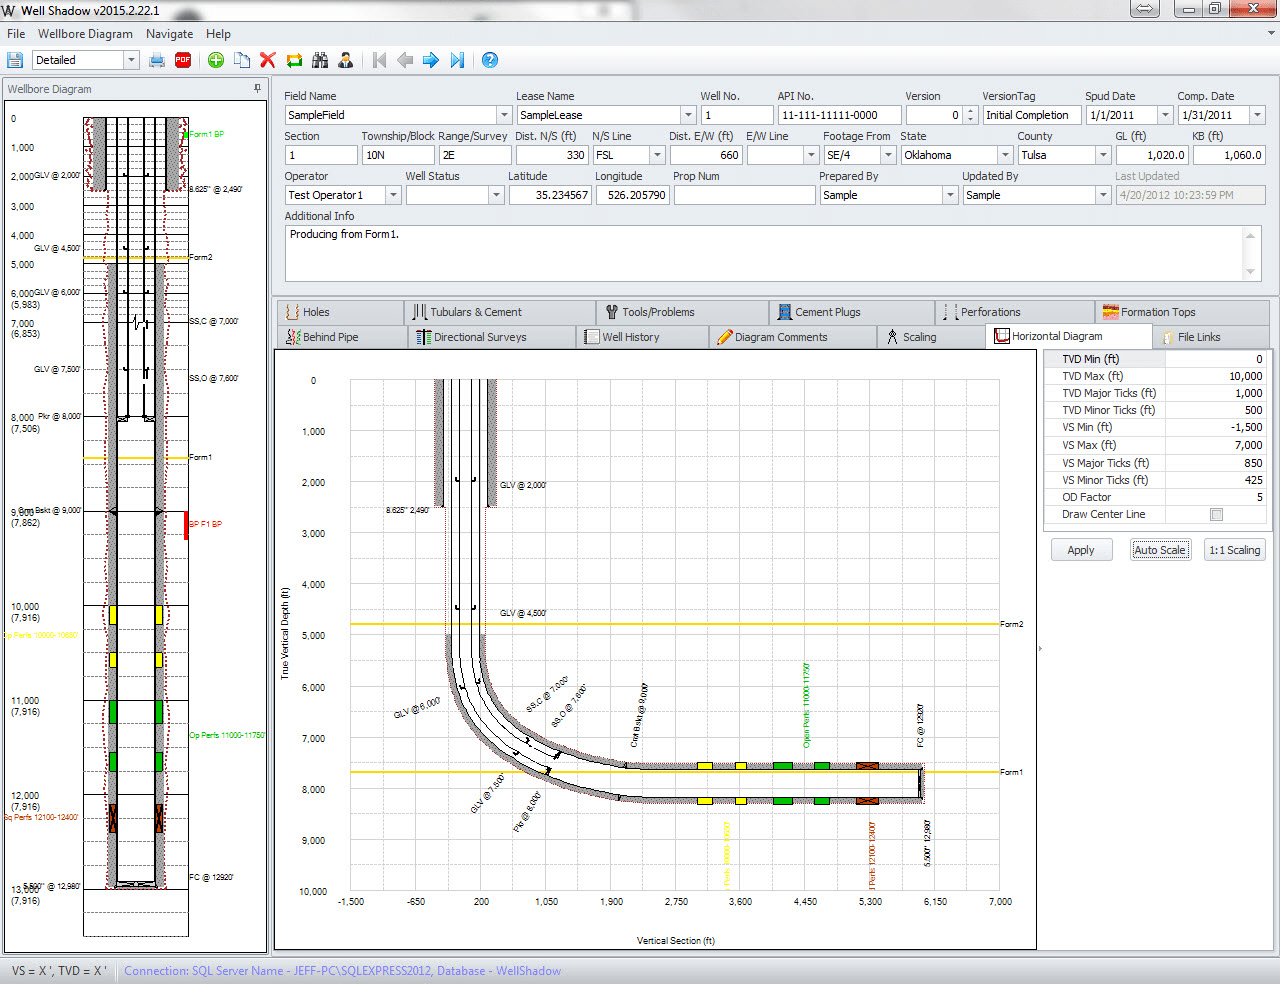 PetroCode Wellbore Diagram Software Application Well Shadow